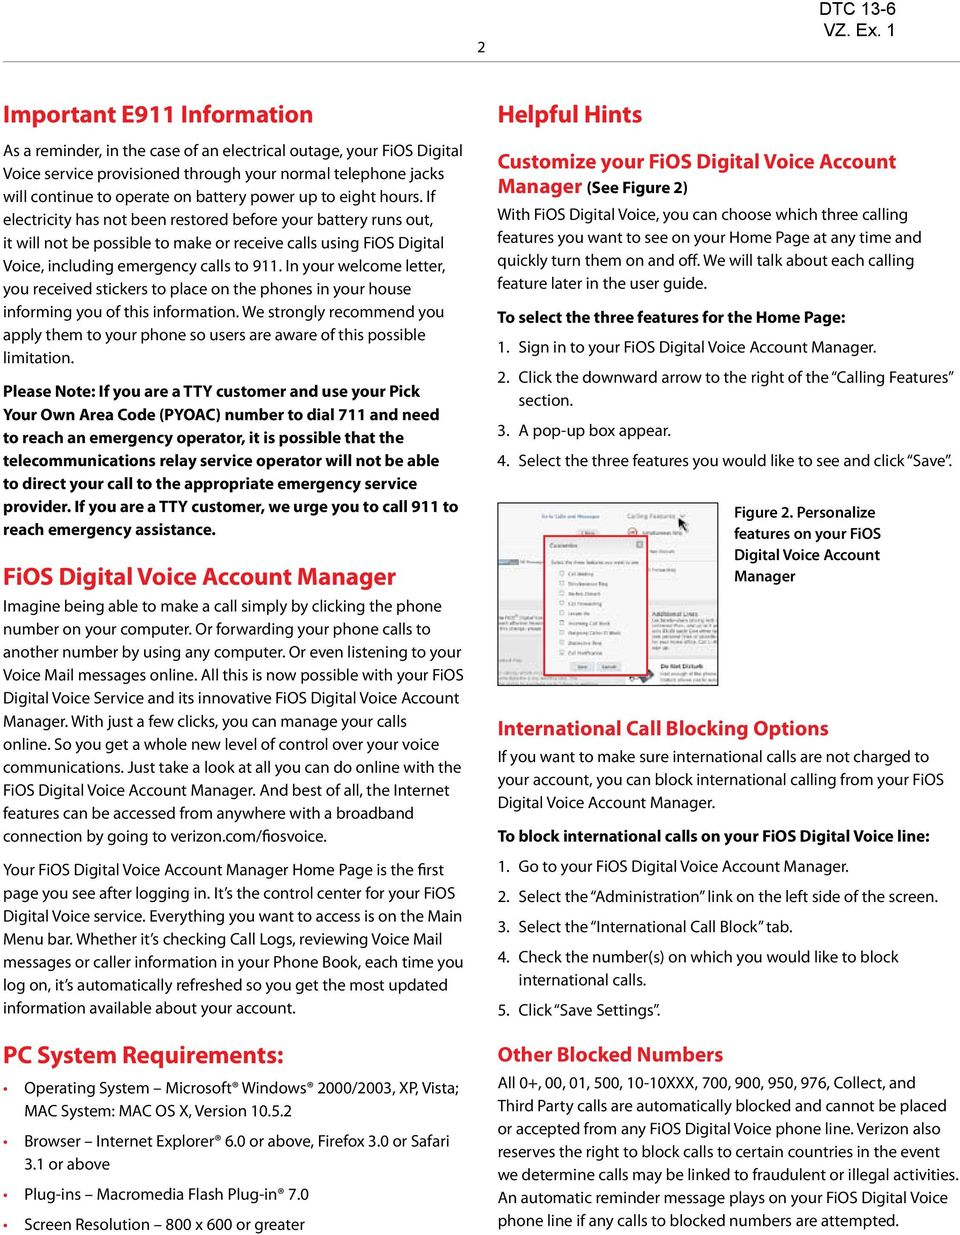 DTC 13-6 VZ  Ex  1  Verizon FioS Digital Voice USer guide - PDF